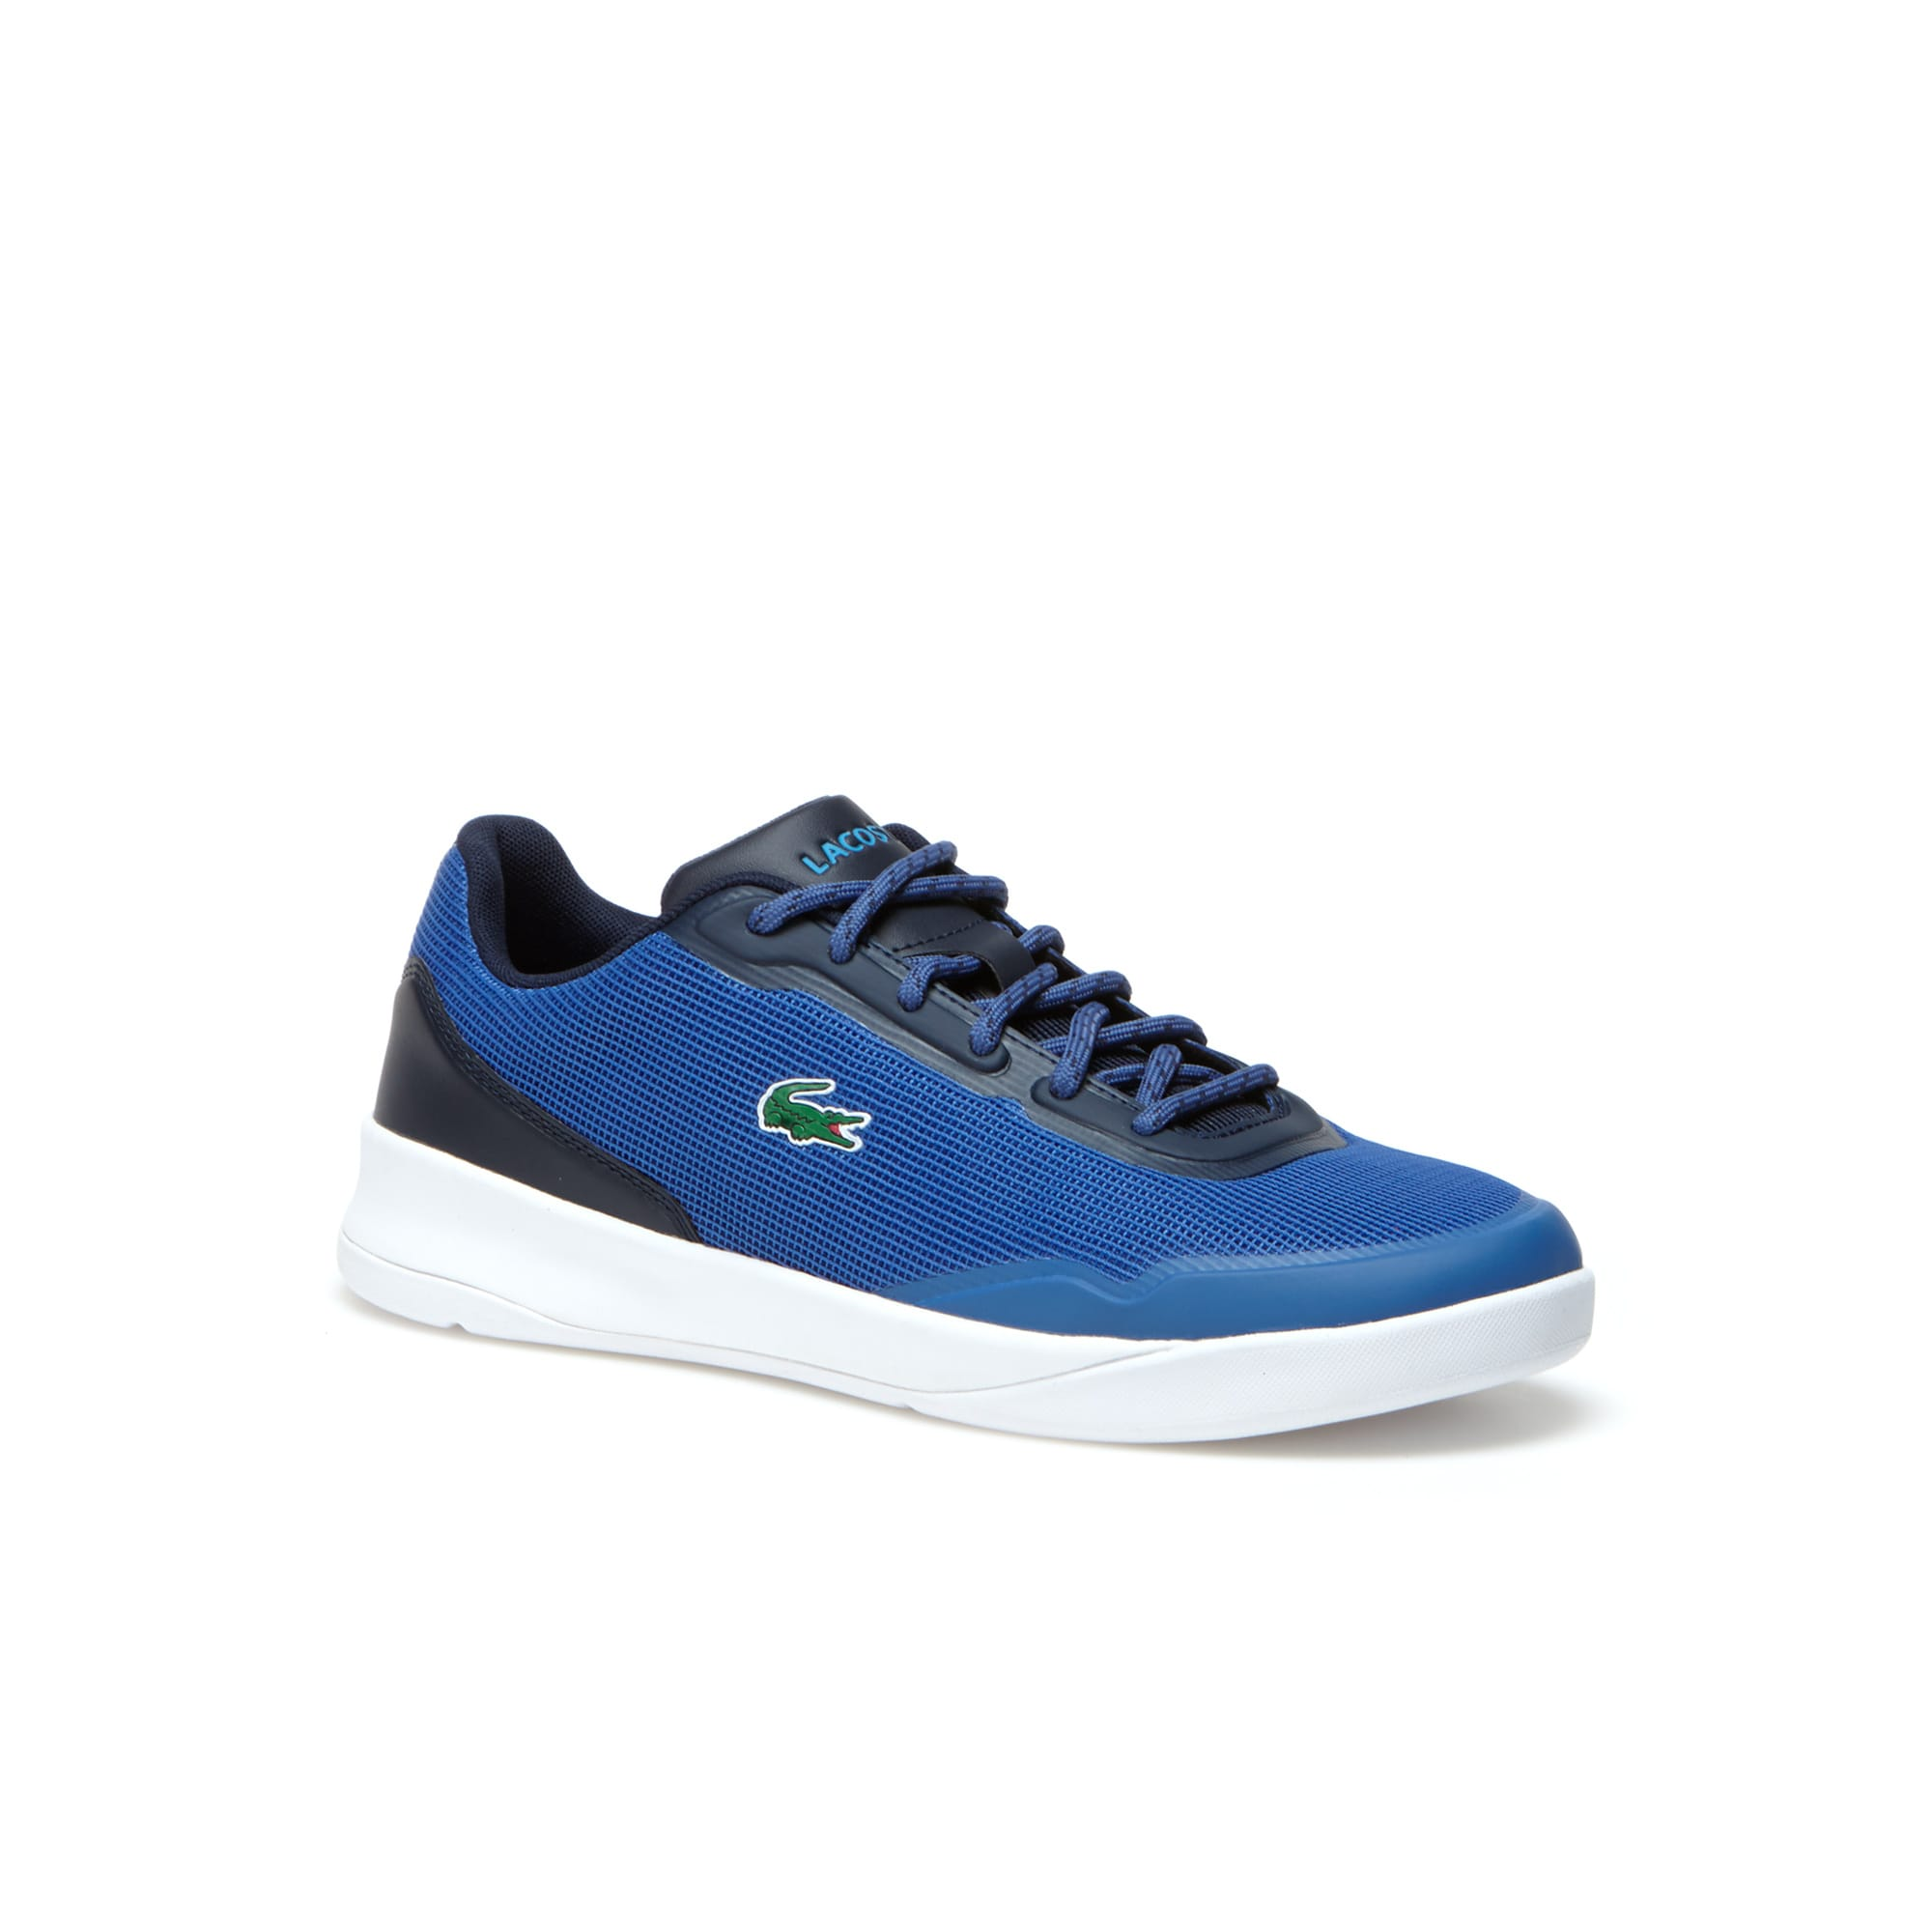 Men's LT Spirit Air Mesh Sneakers